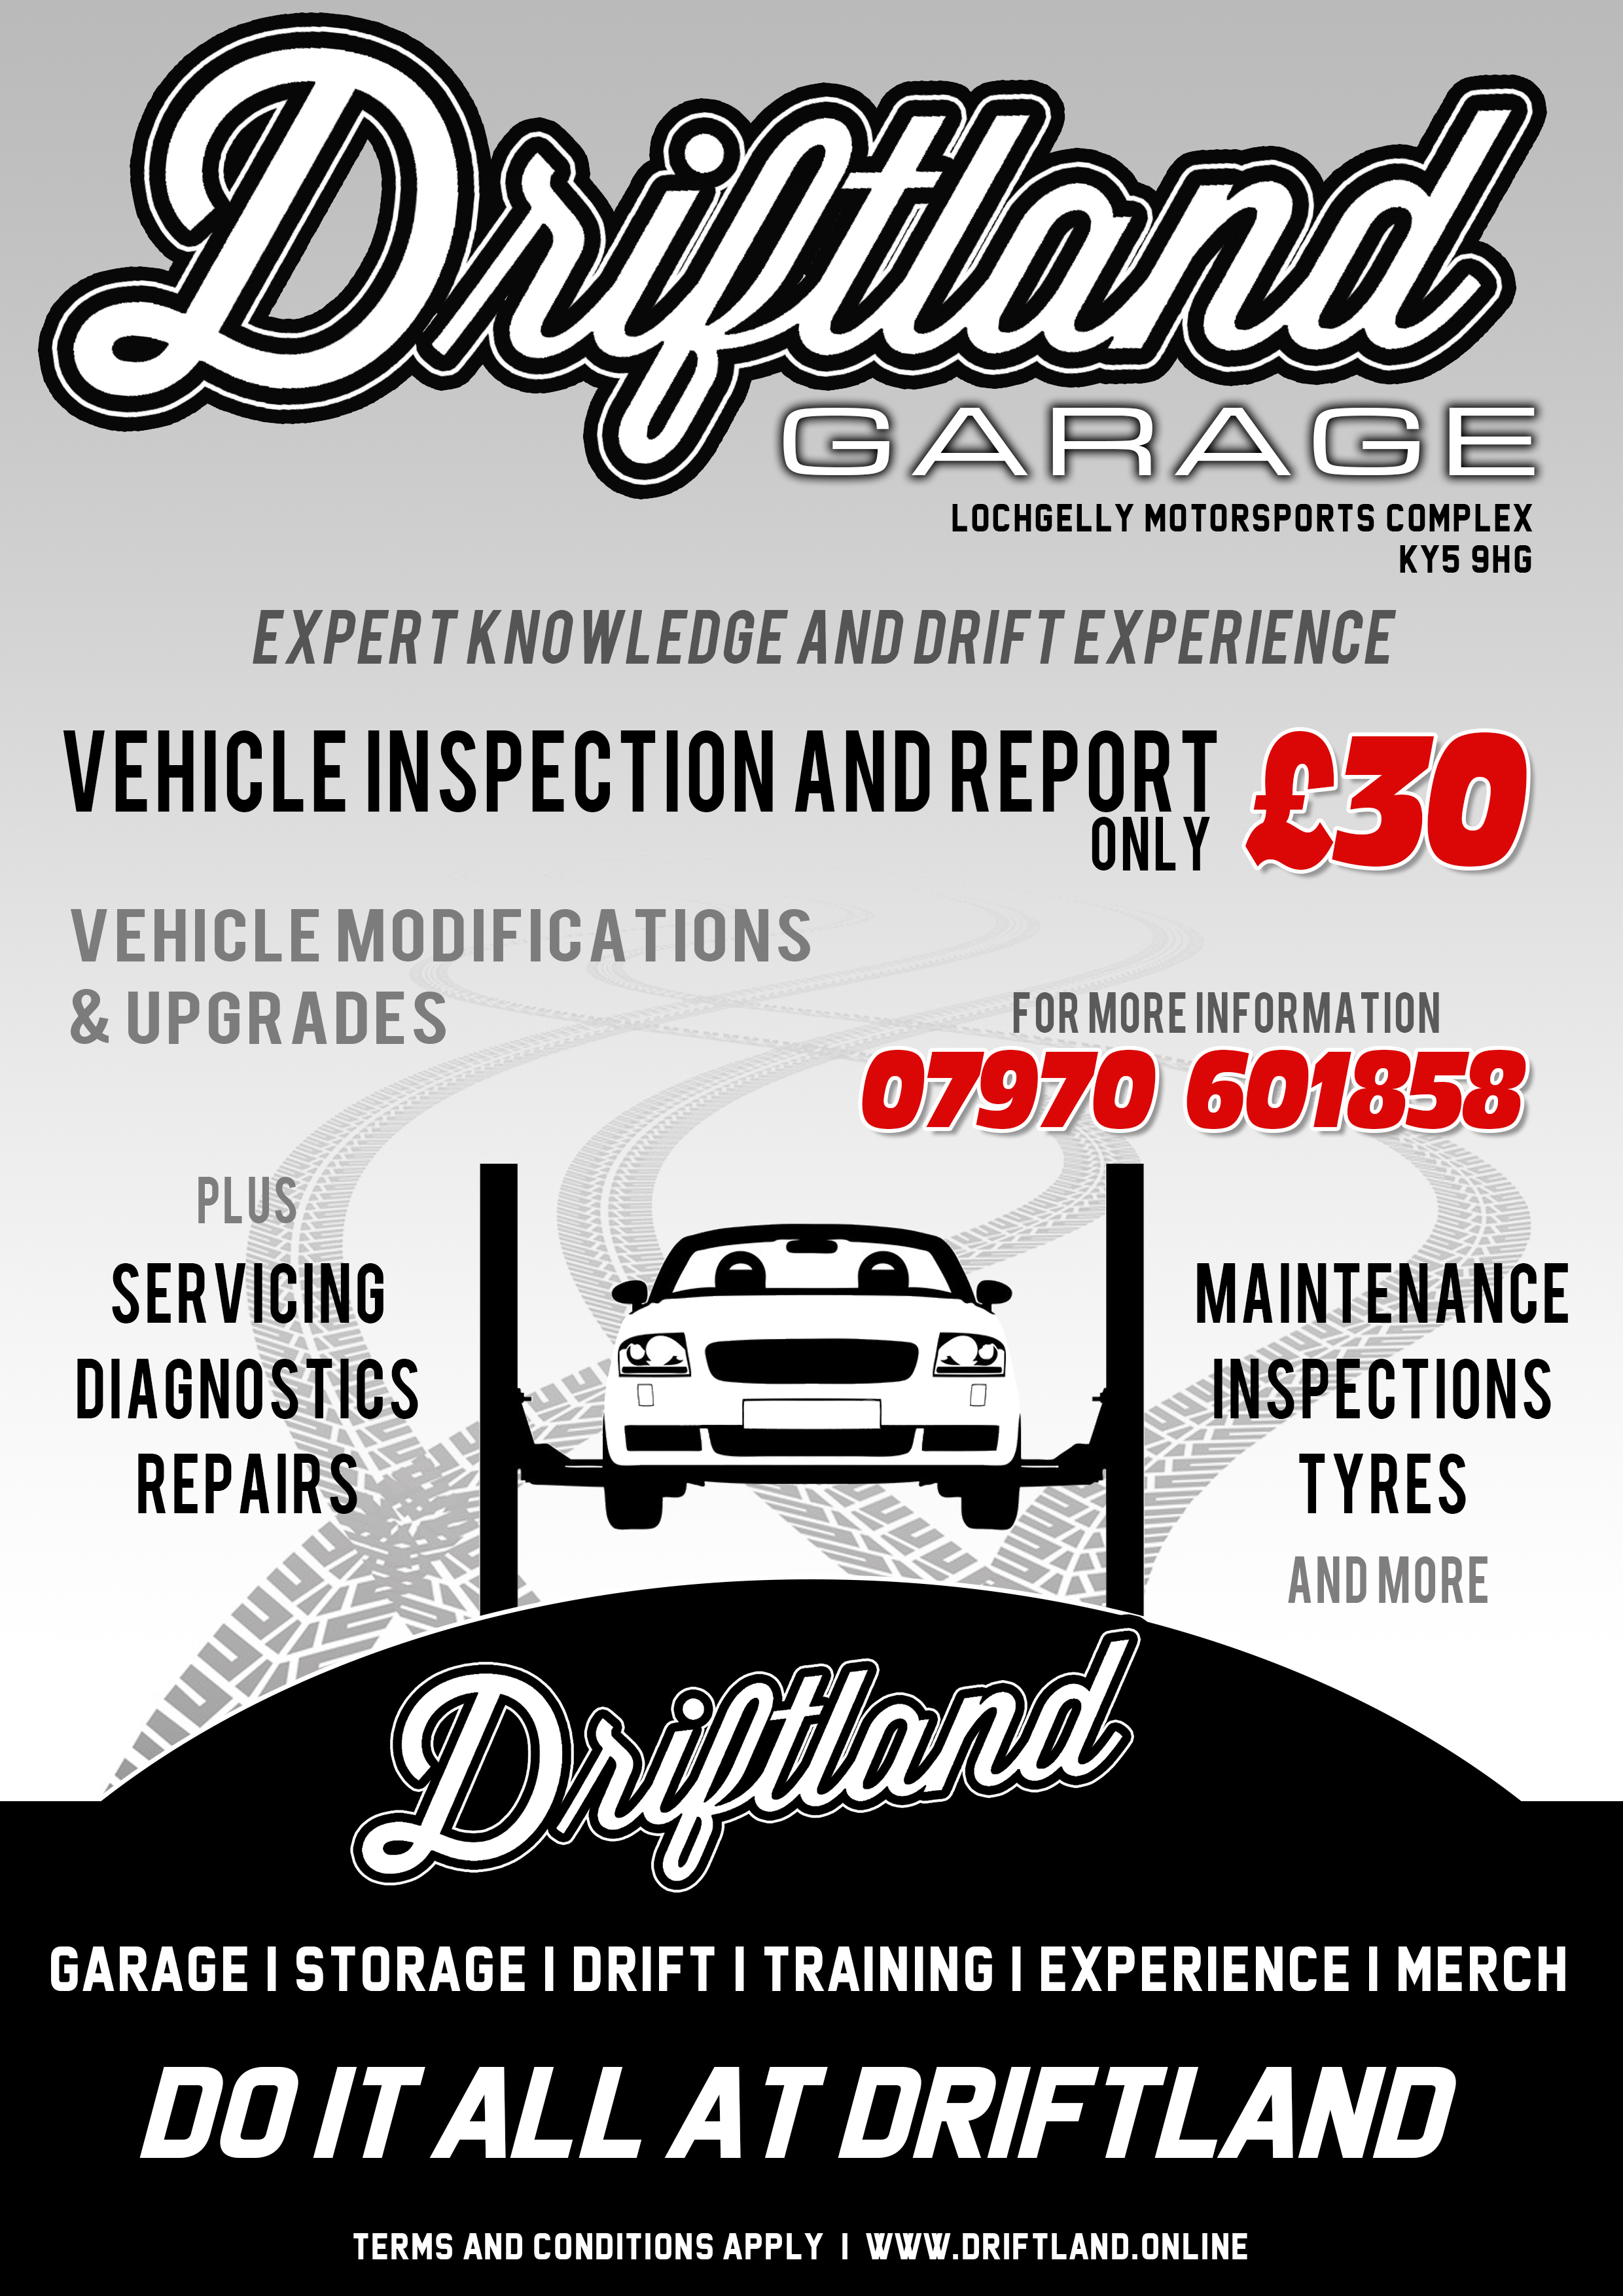 Driftland Garage - Modification, Engine Swaps, Tuning and Diagnostics